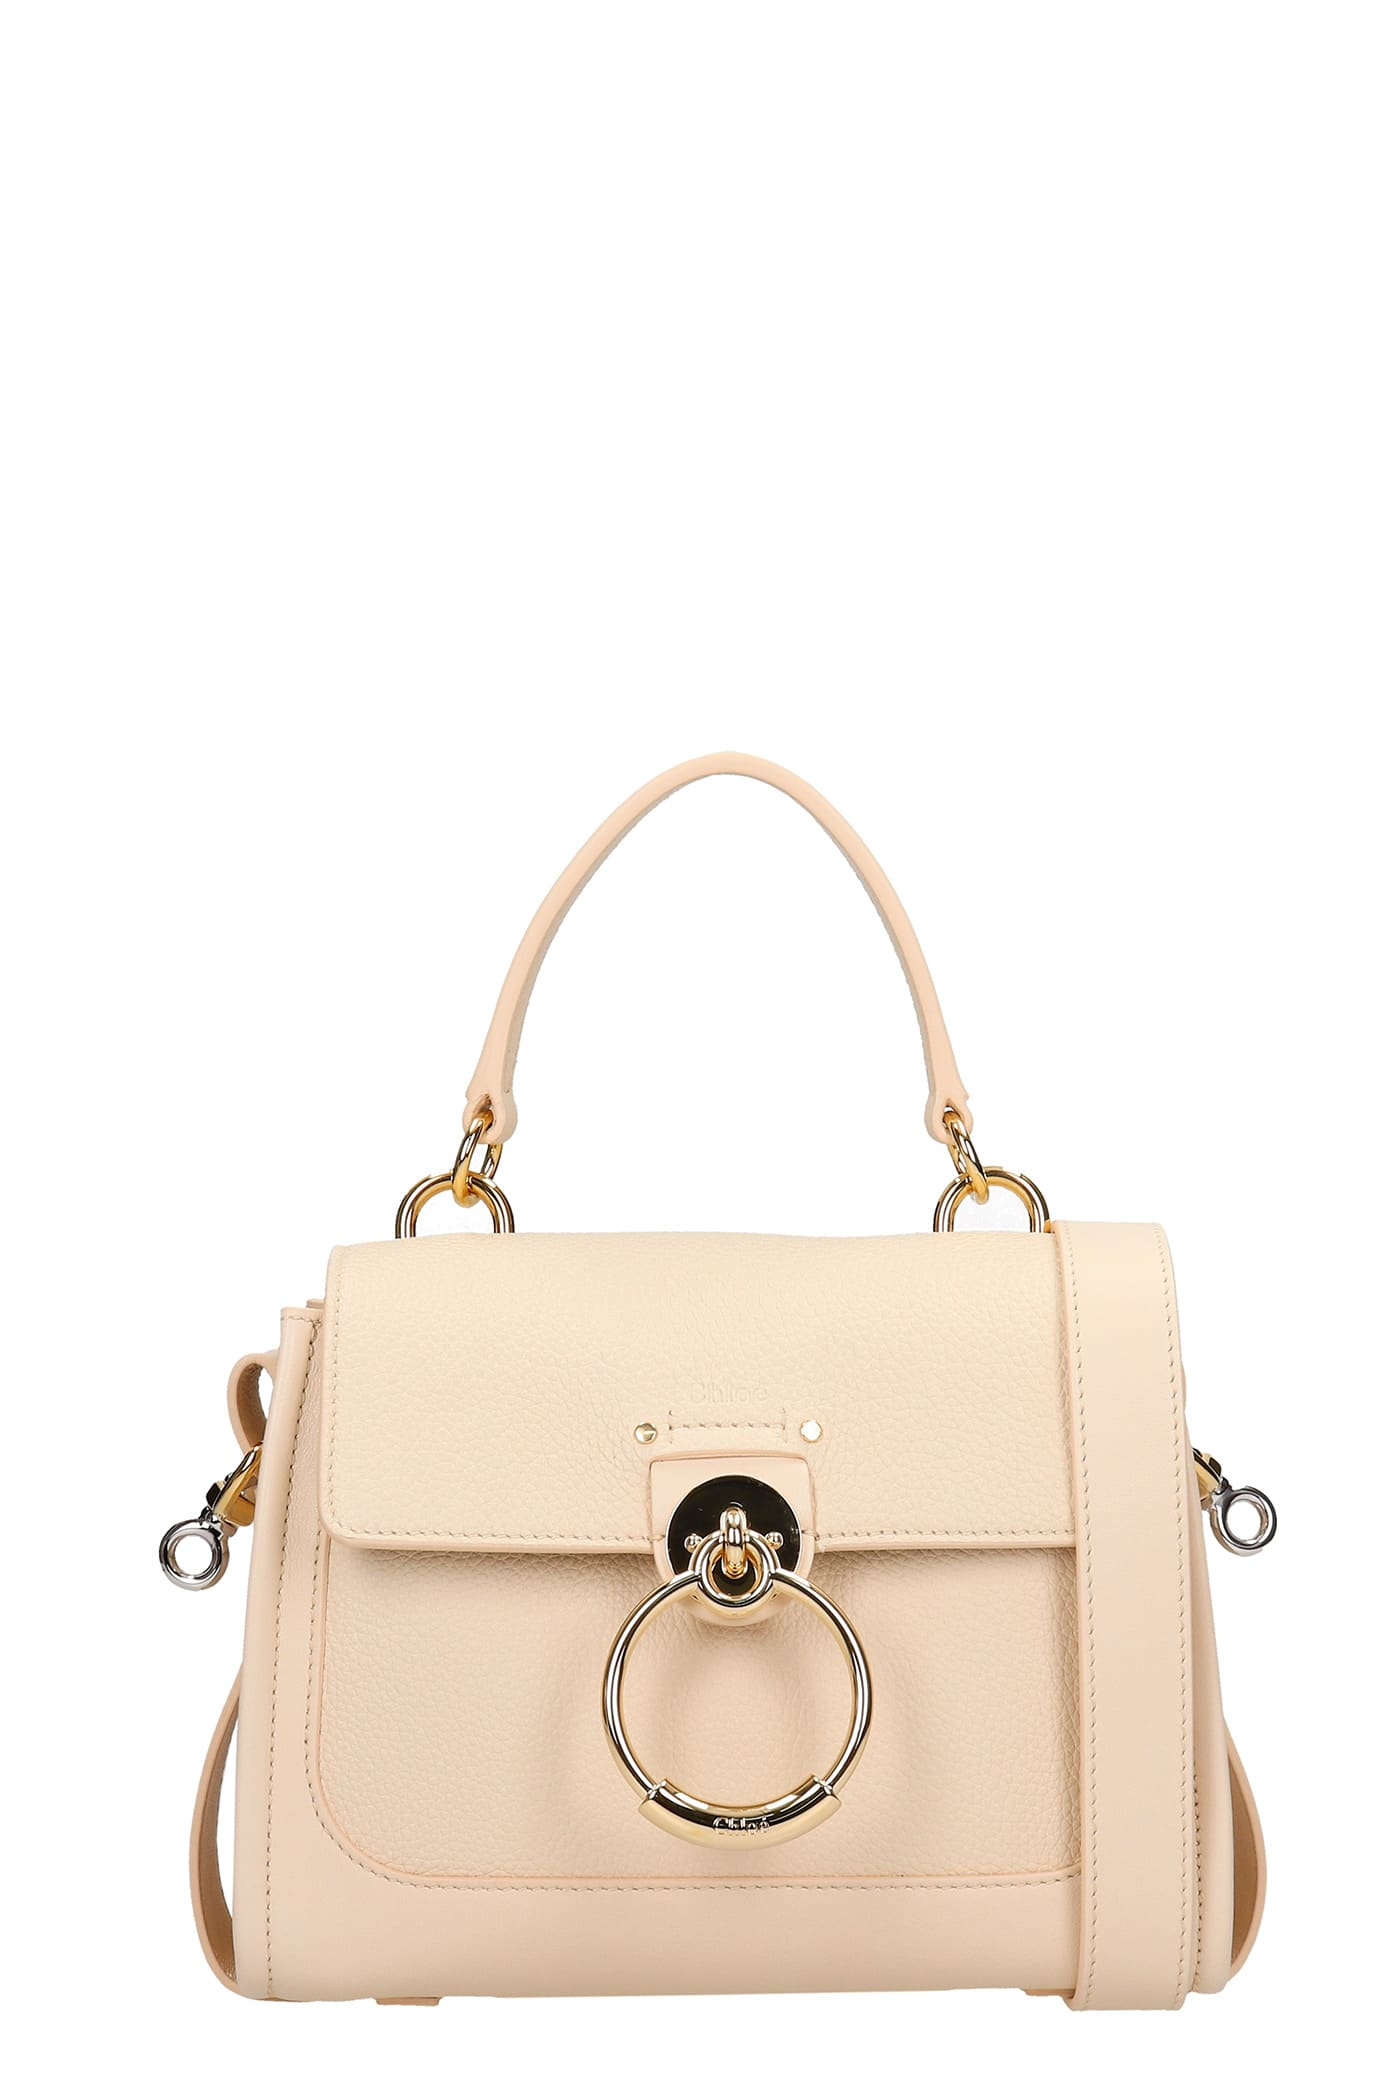 Chloé Leathers TESS HAND BAG IN WHITE LEATHER